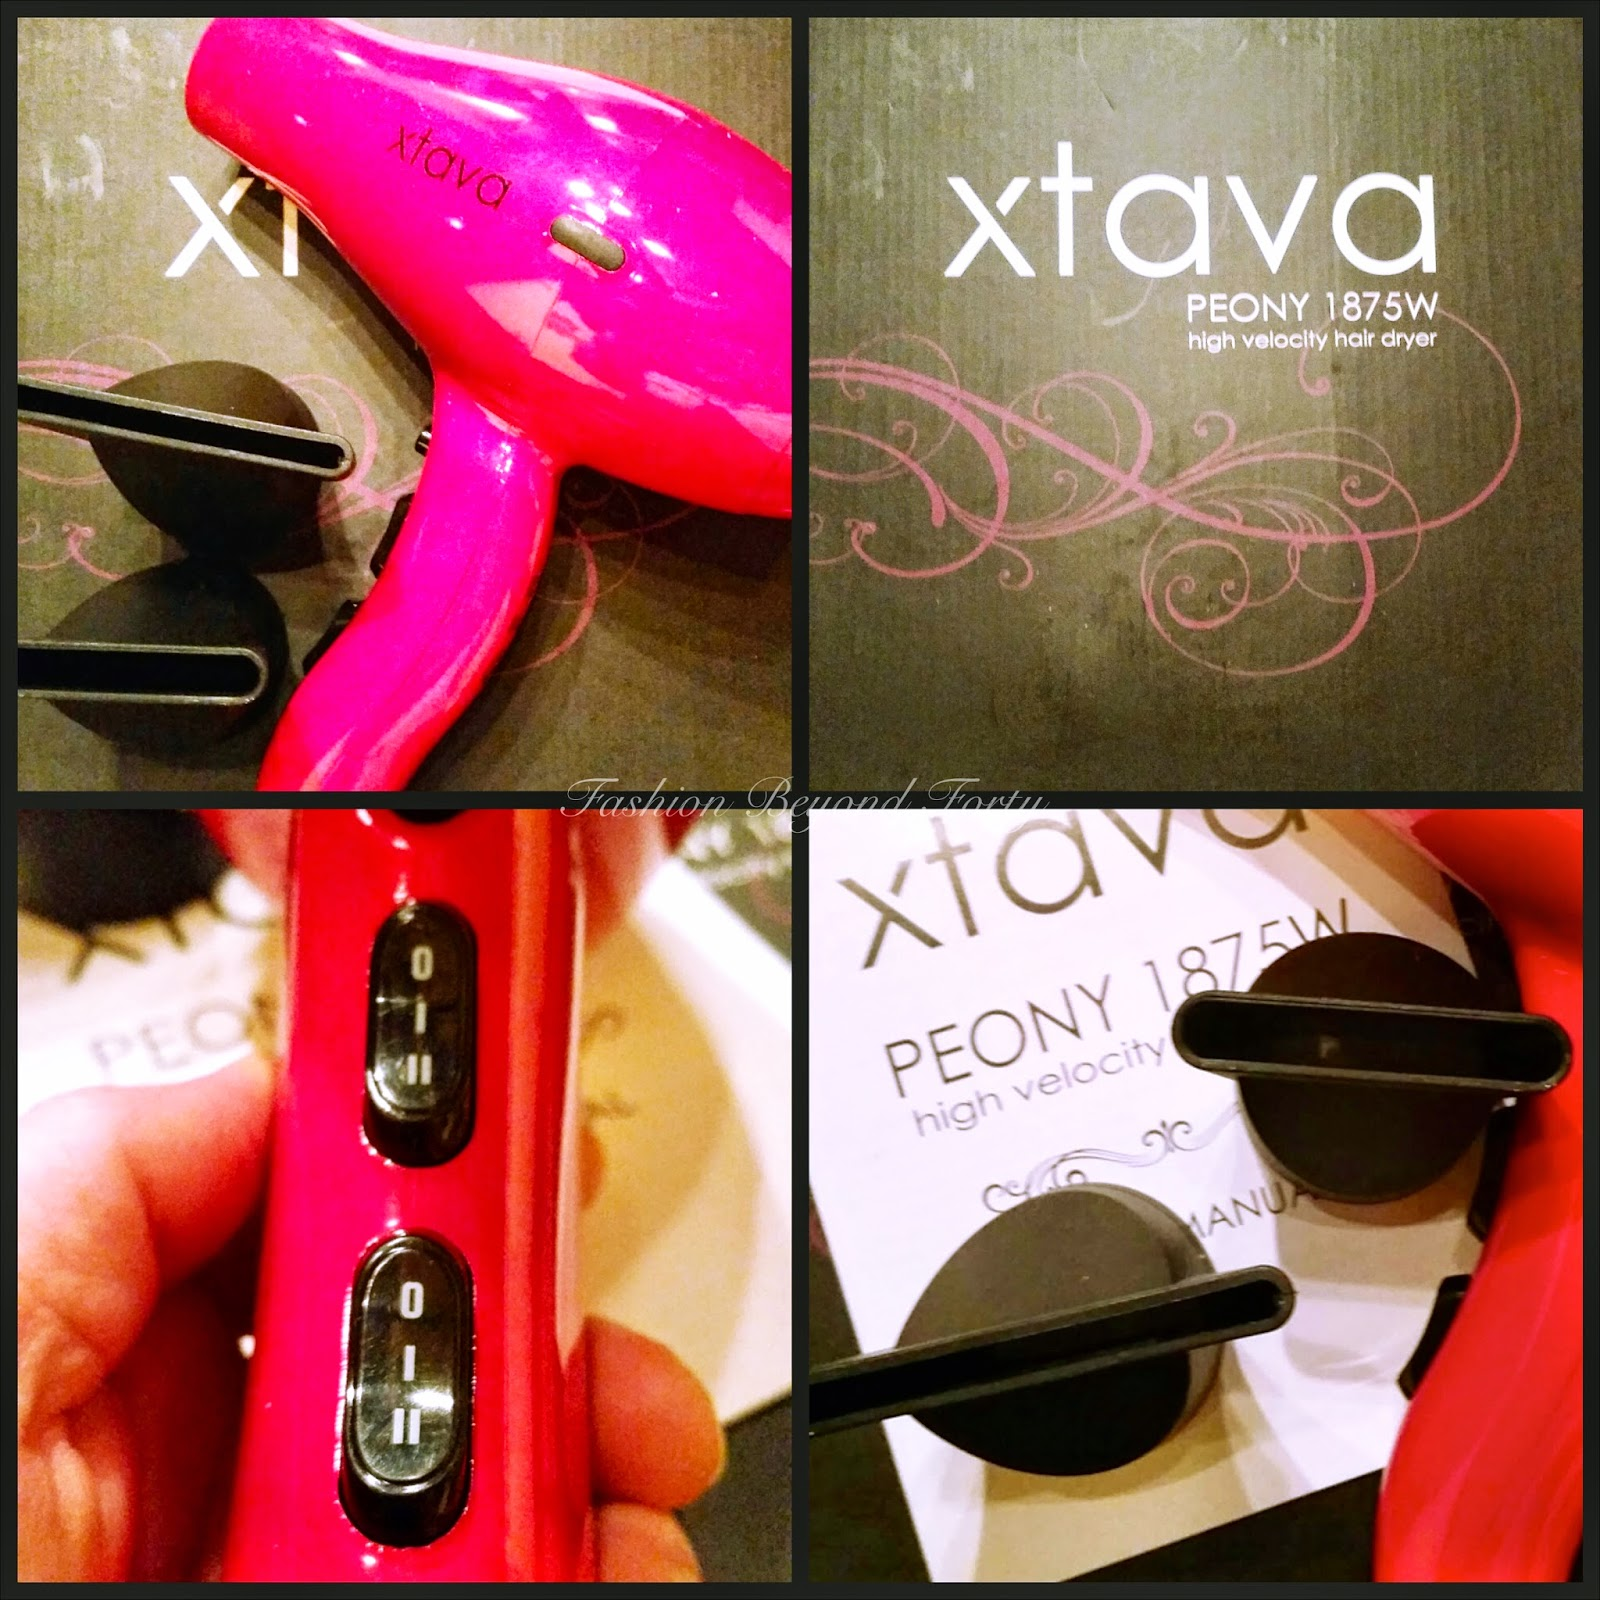 Review Peony 1875W Hair Dryer with Turbo JOHNSON Motor, Professional Performance and Compact Design (Pink) by Xtava TM